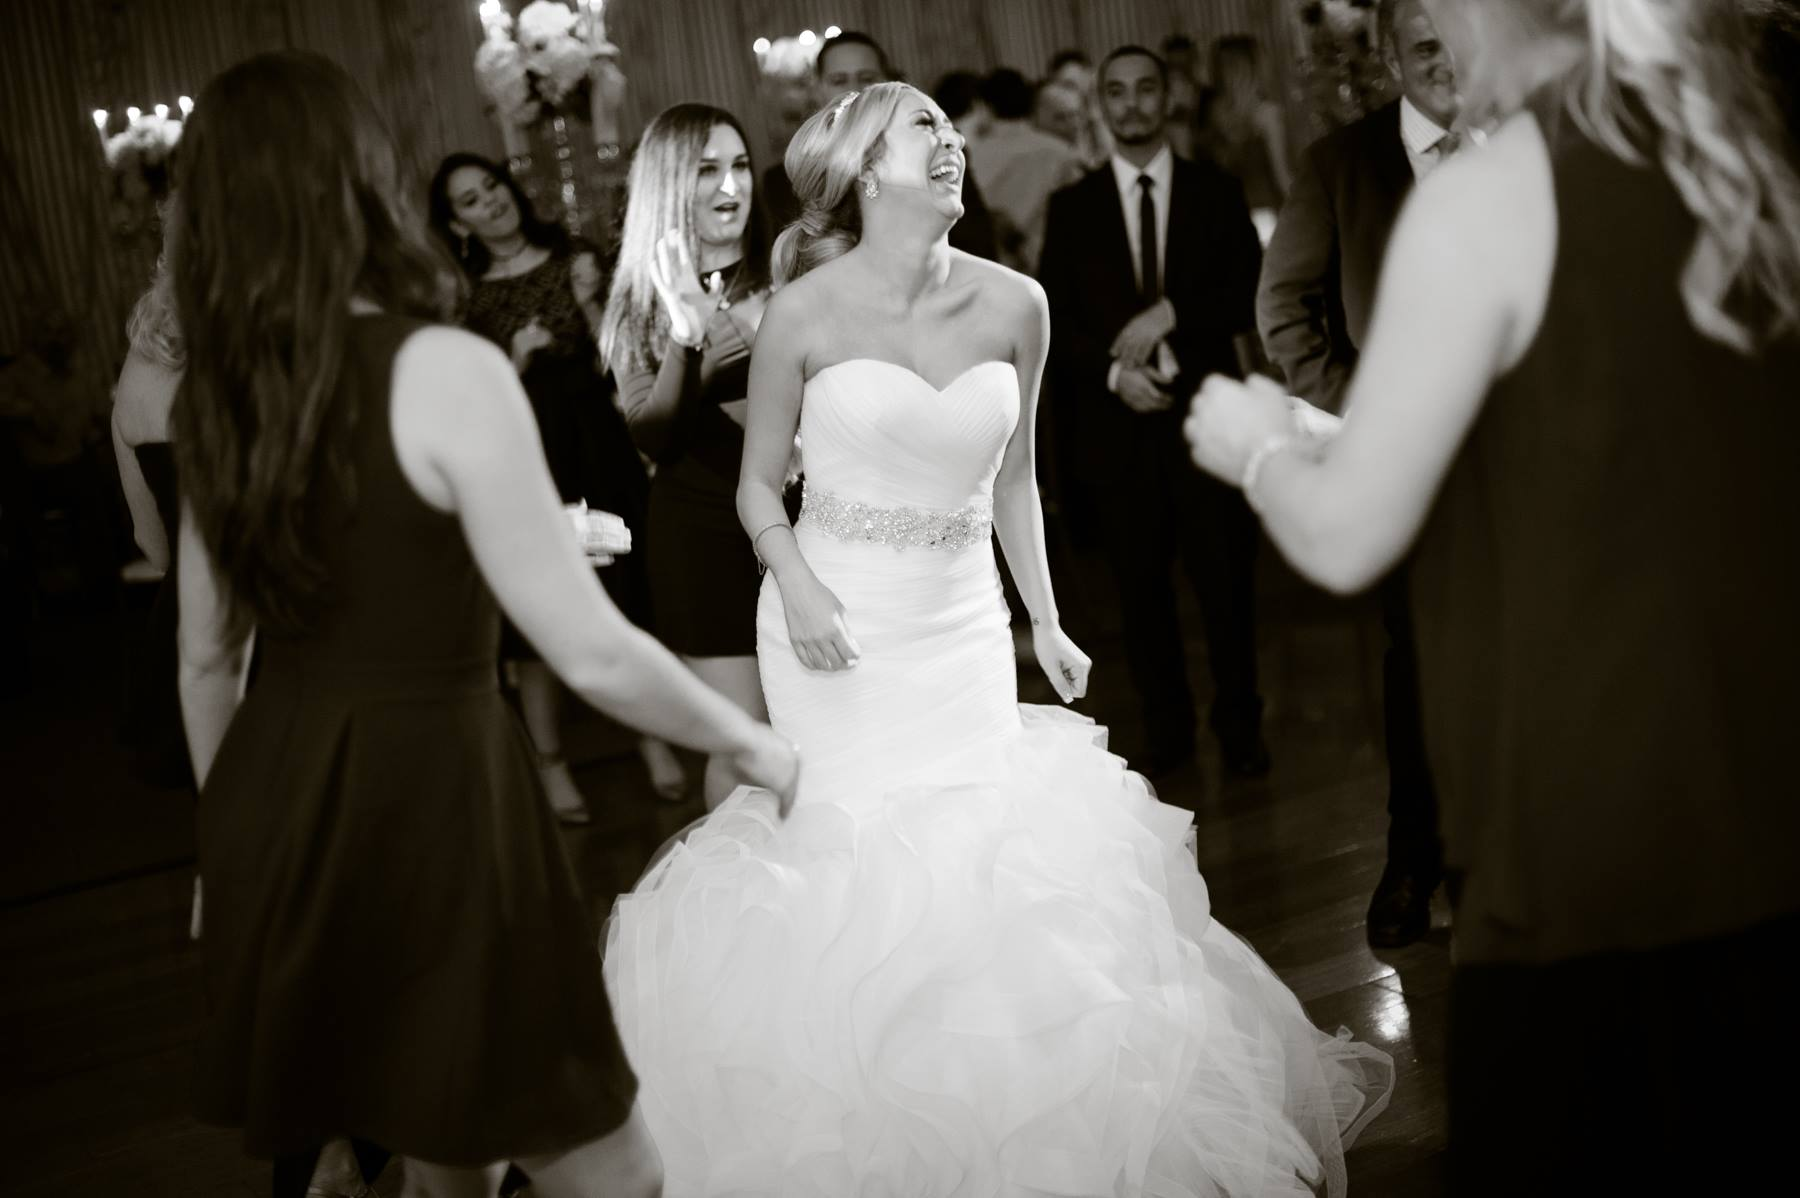 bride-dancing-candidly-on-dance-floor.jpg